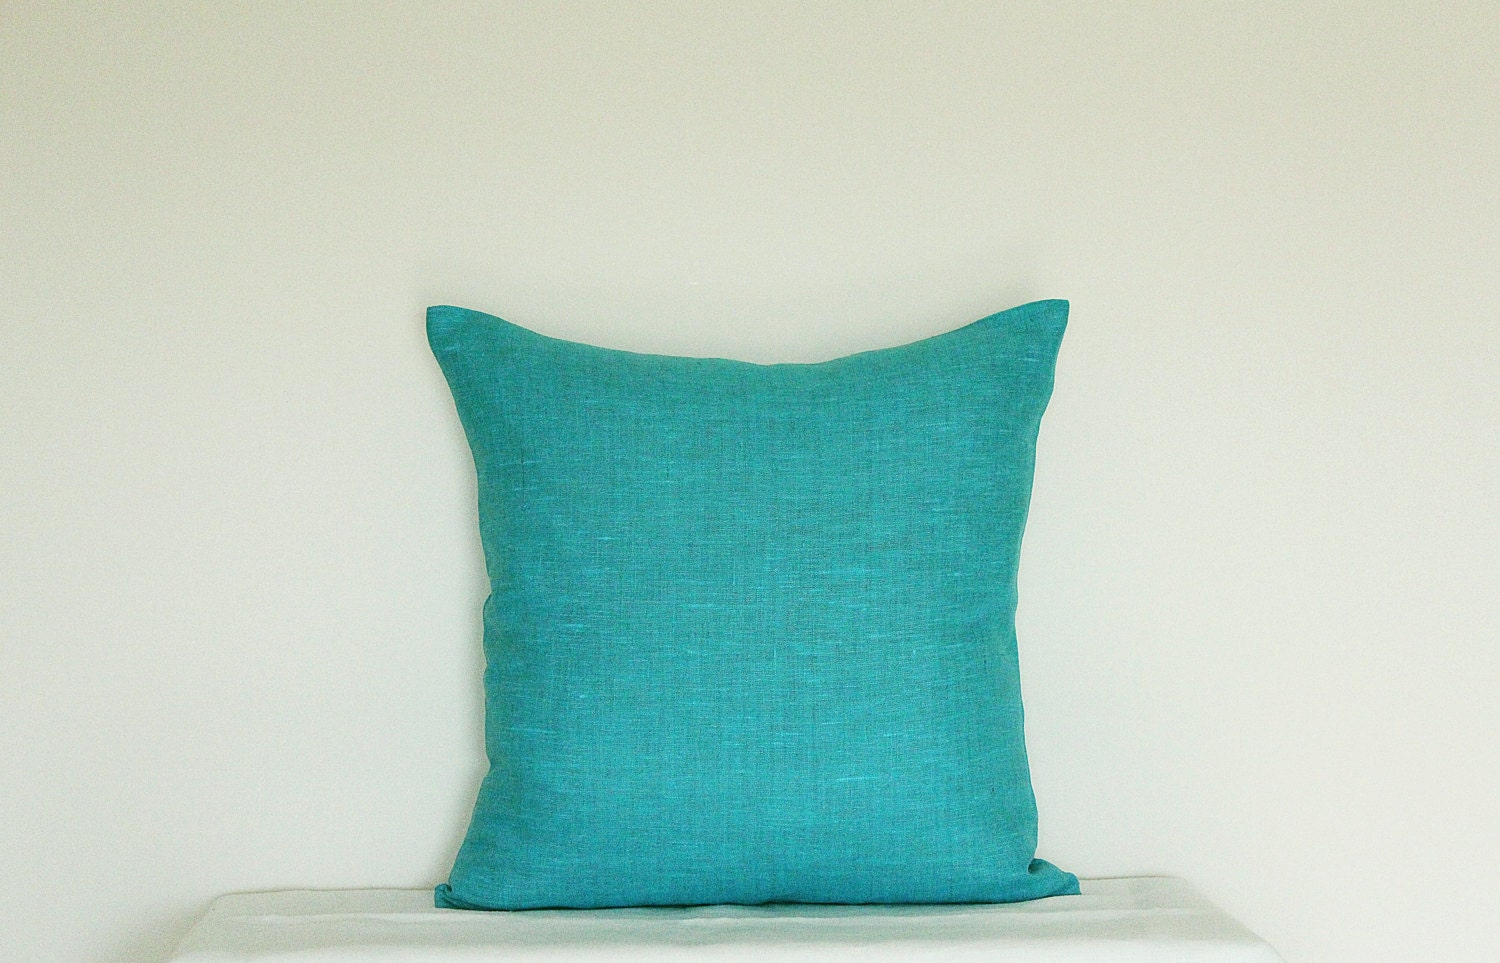 Teal Decorative Bed Pillows : Decorative Bright Teal Blue Pillow Turquoise Pillow Cover